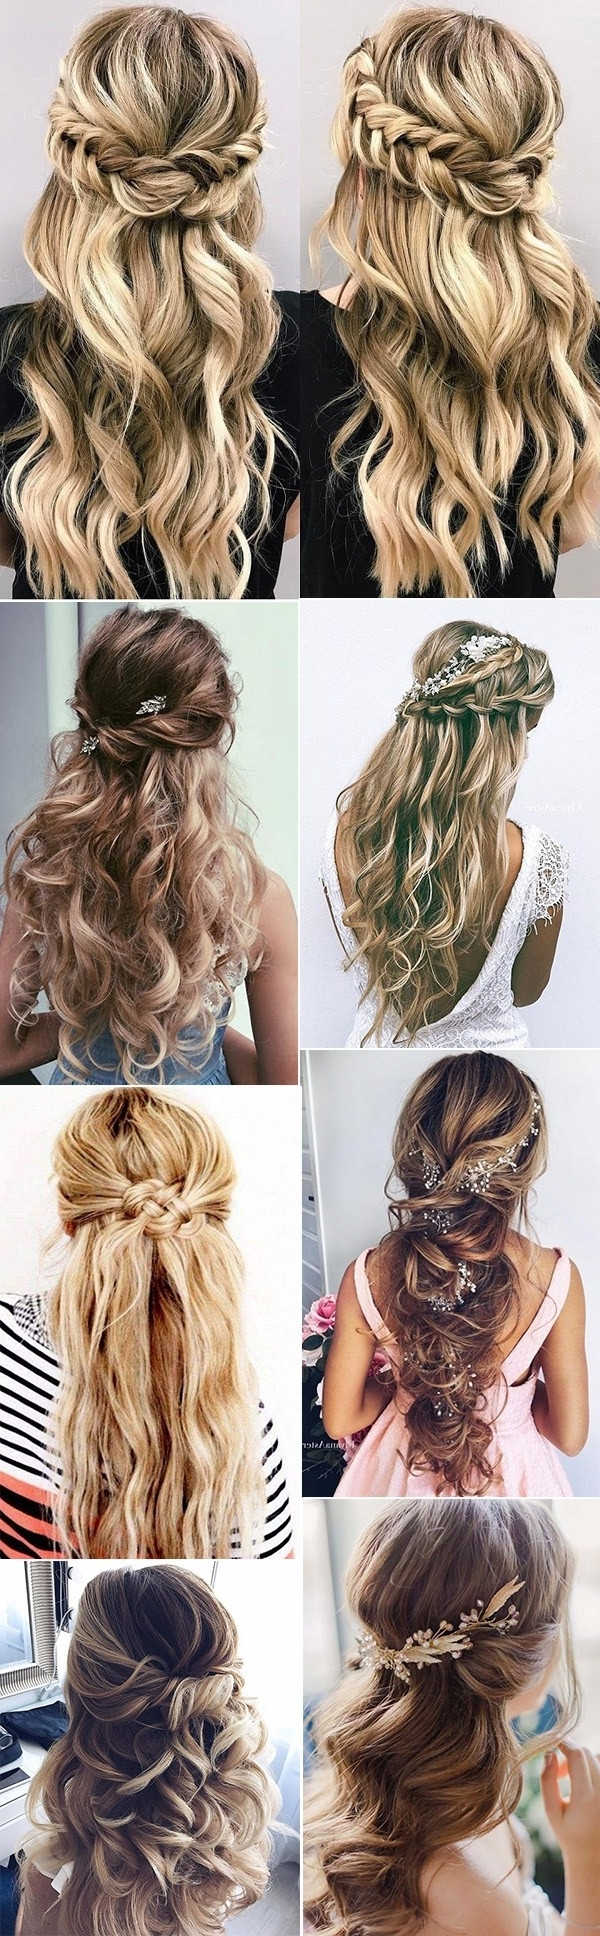 15 Chic Half Up Half Down Wedding Hairstyles For Long Hair With Favorite Wedding Hairstyles Up For Long Hair (View 12 of 15)